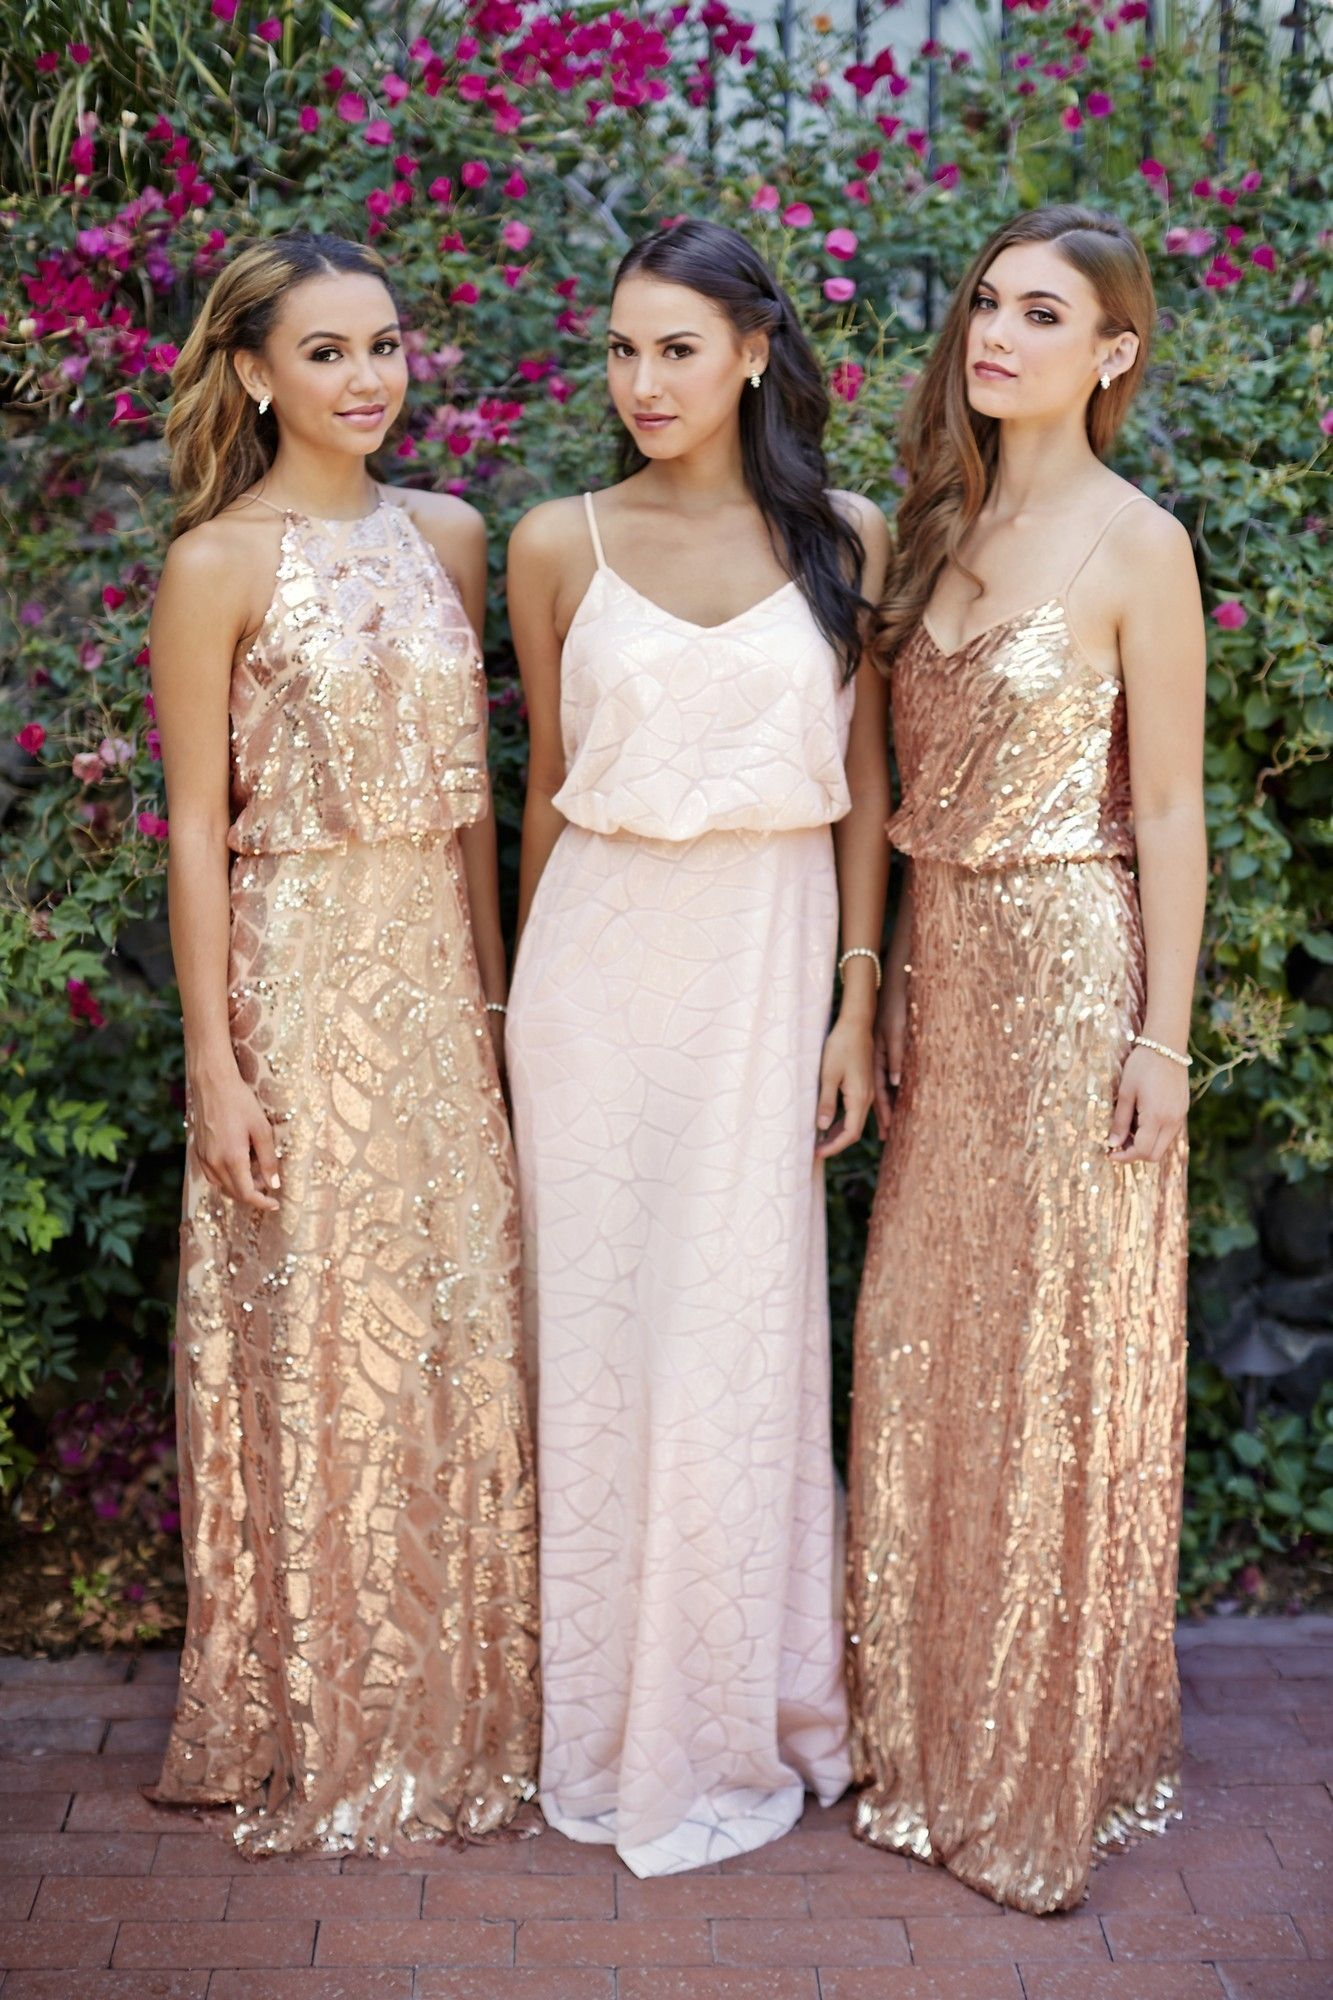 934d1efccbb Let your bridesmaids sparkle and shine! Blush and rose gold sequin ...